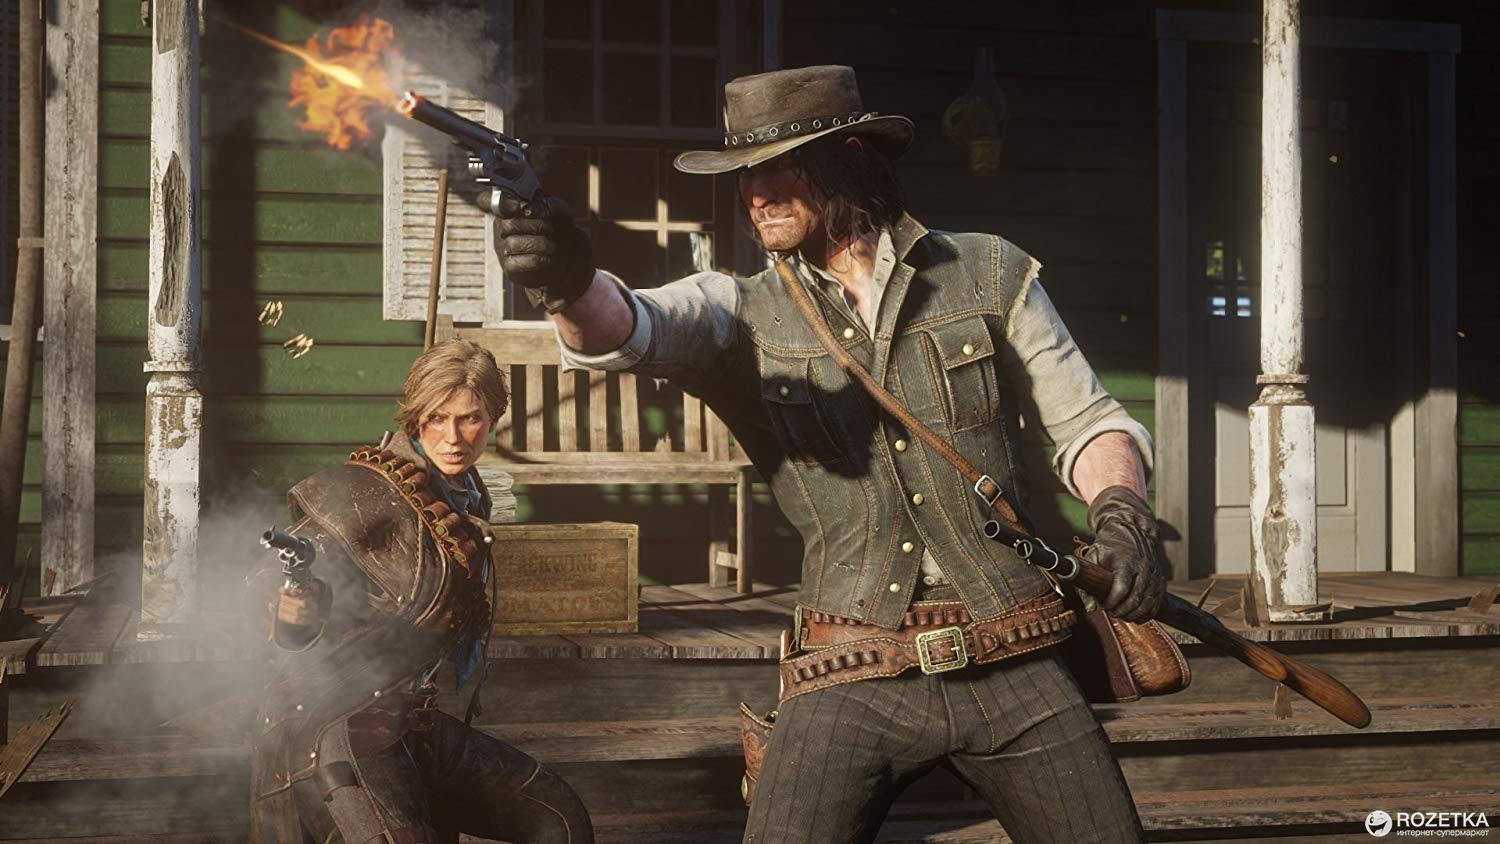 How to set up Red Dead Redemption 2? Graphics settings and optimization for a weak PC